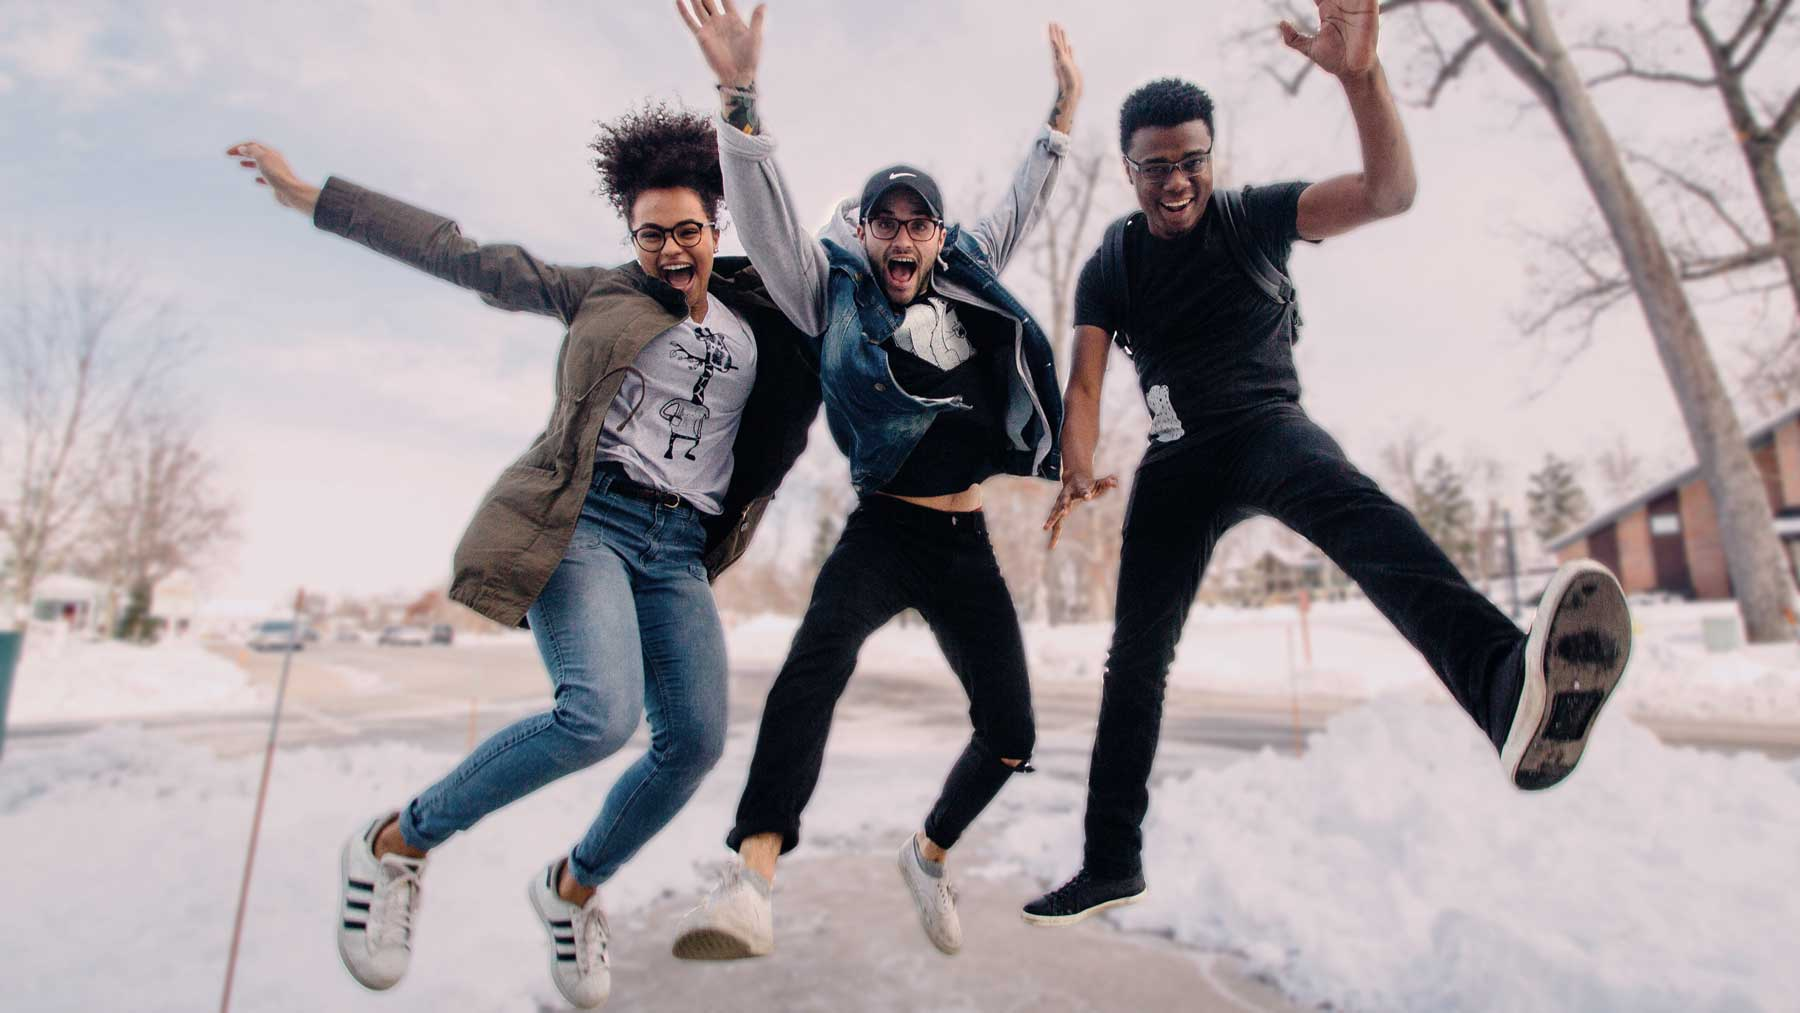 Business owners jumping for joy about their business websites by perk brands